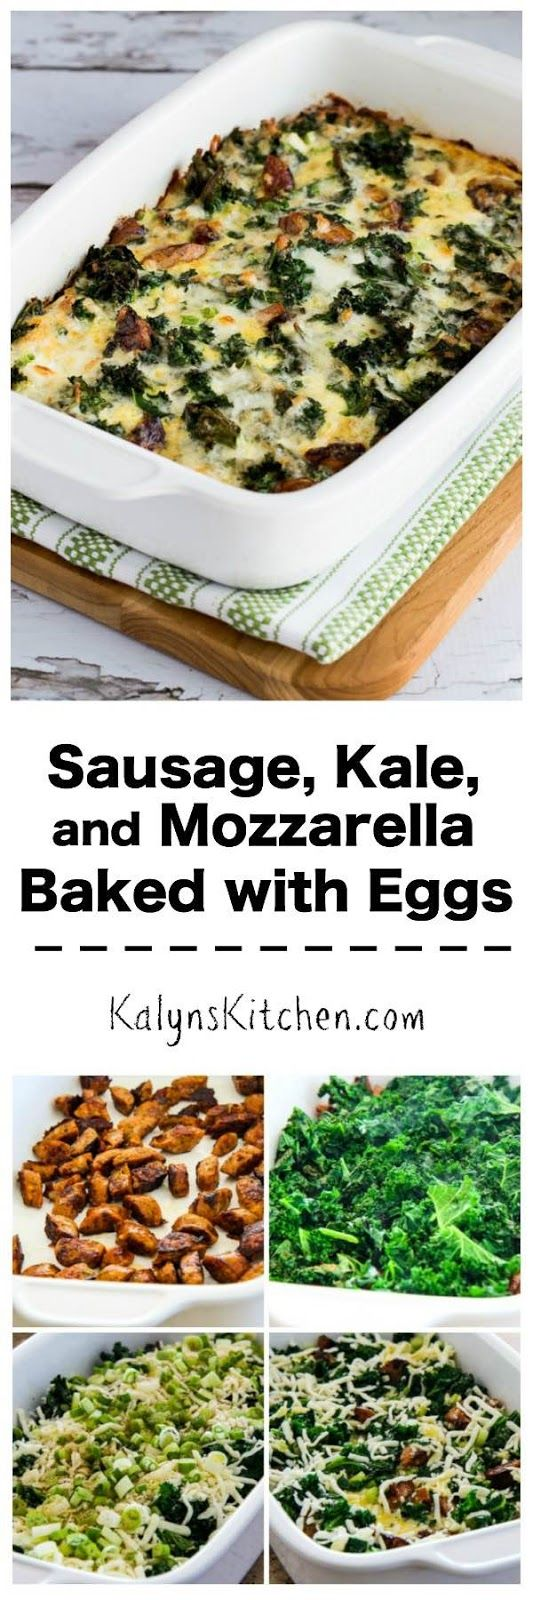 Sausage, Kale, and Mozzarella Egg Bake is a tasty low-carb dish for ...